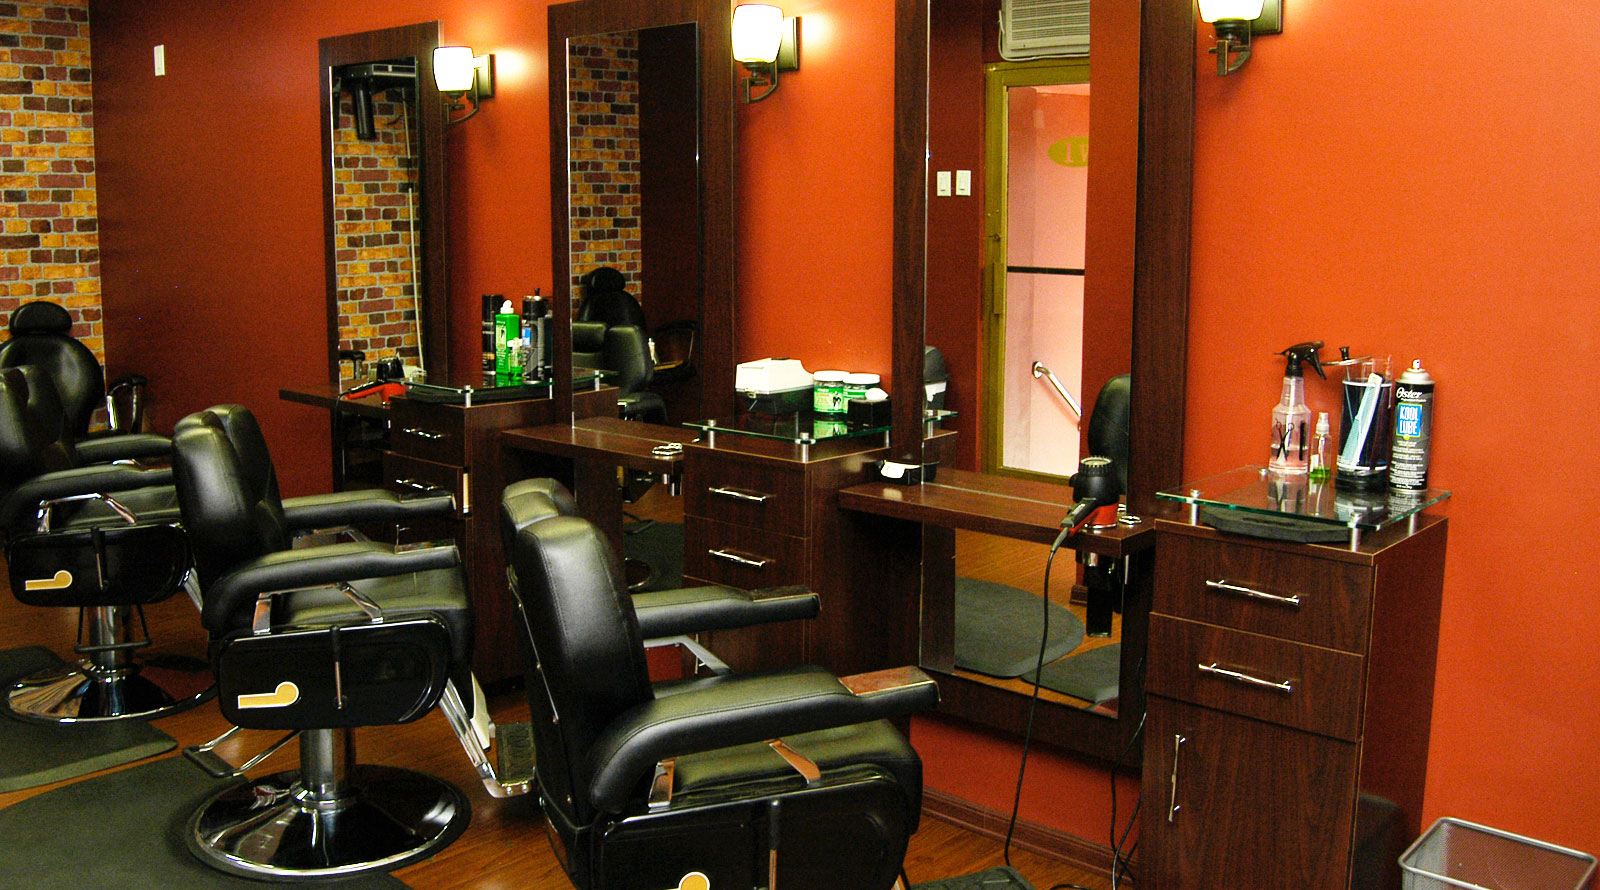 Bespoke Barber Shop Photos Pictures to pin on Pinterest